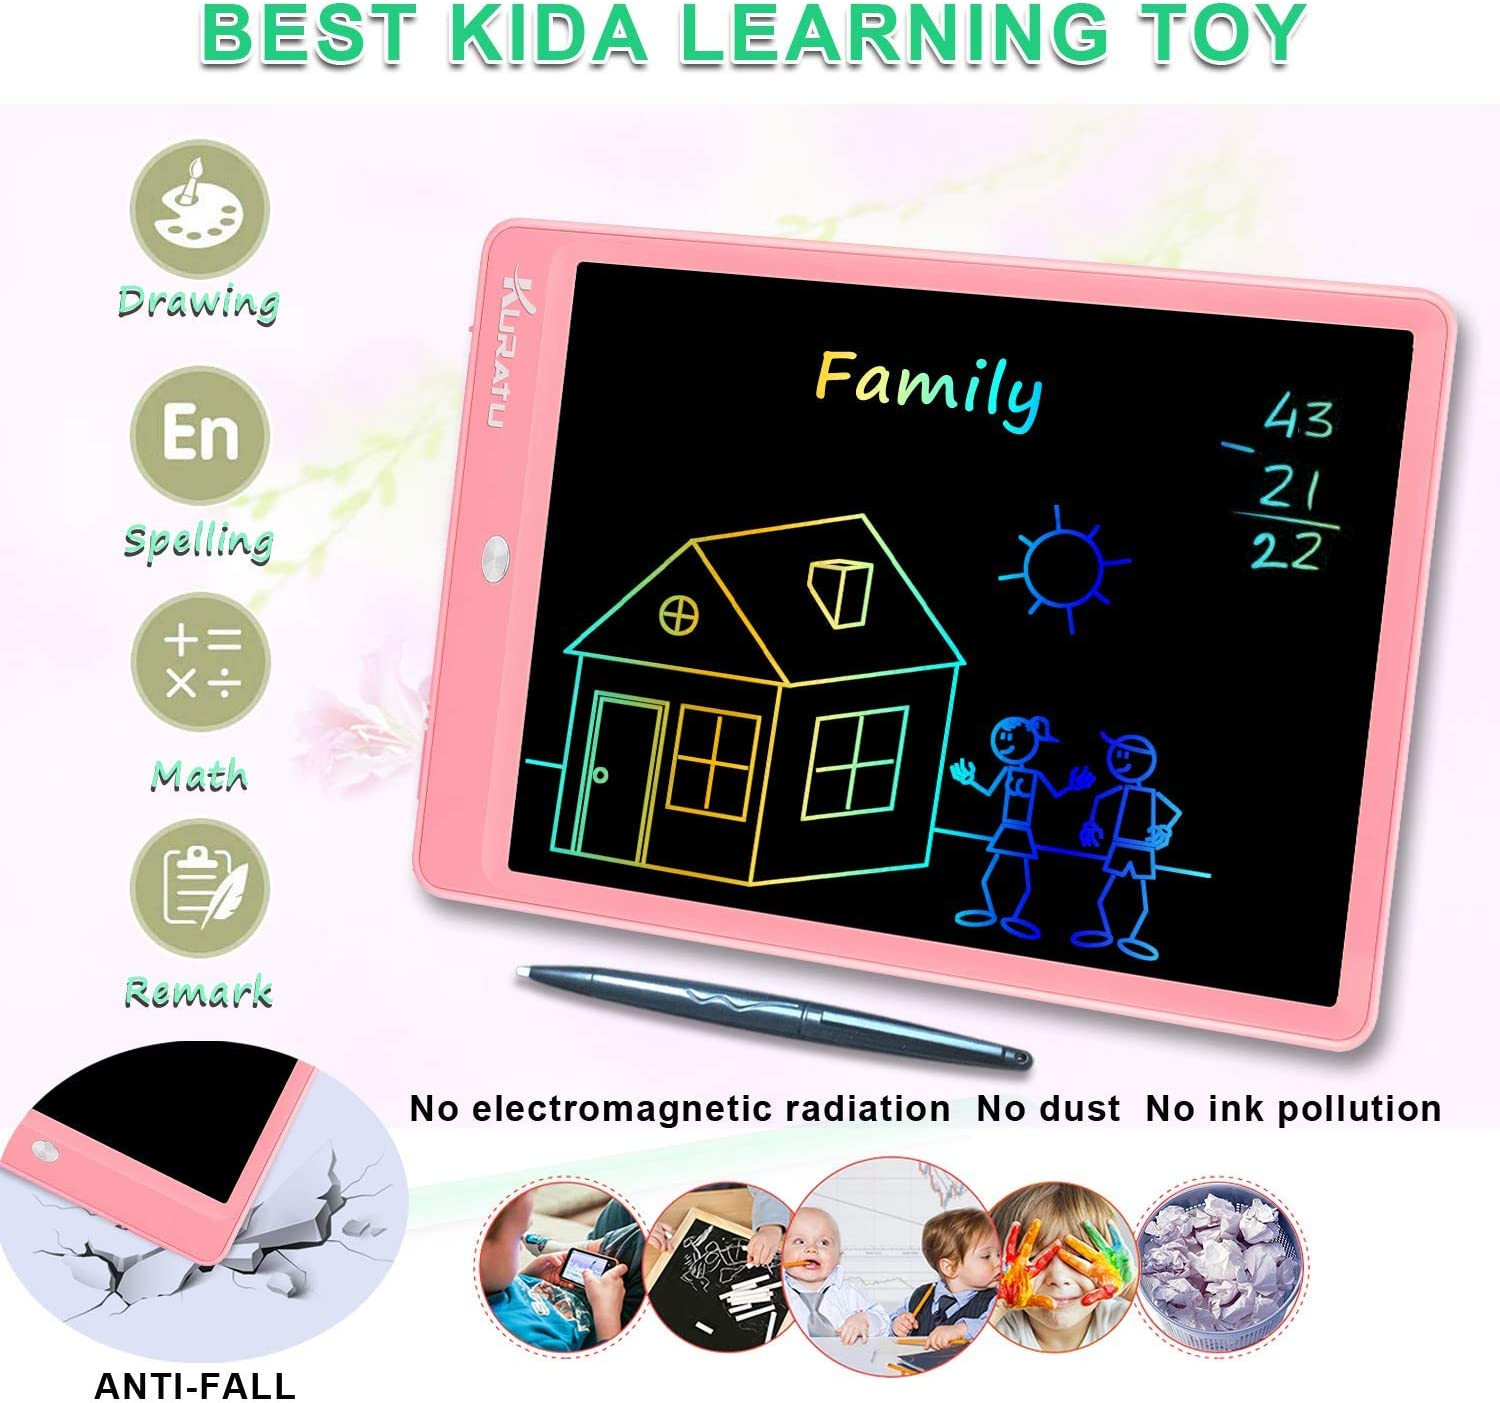 Portable Reusable Ewriter Digital Handwriting Paper Doodle Board for School KURATU 10 inch Colorful Screen Electronic Drawing Pads for Kids Fridge or Office Orange LCD Writing Tablet